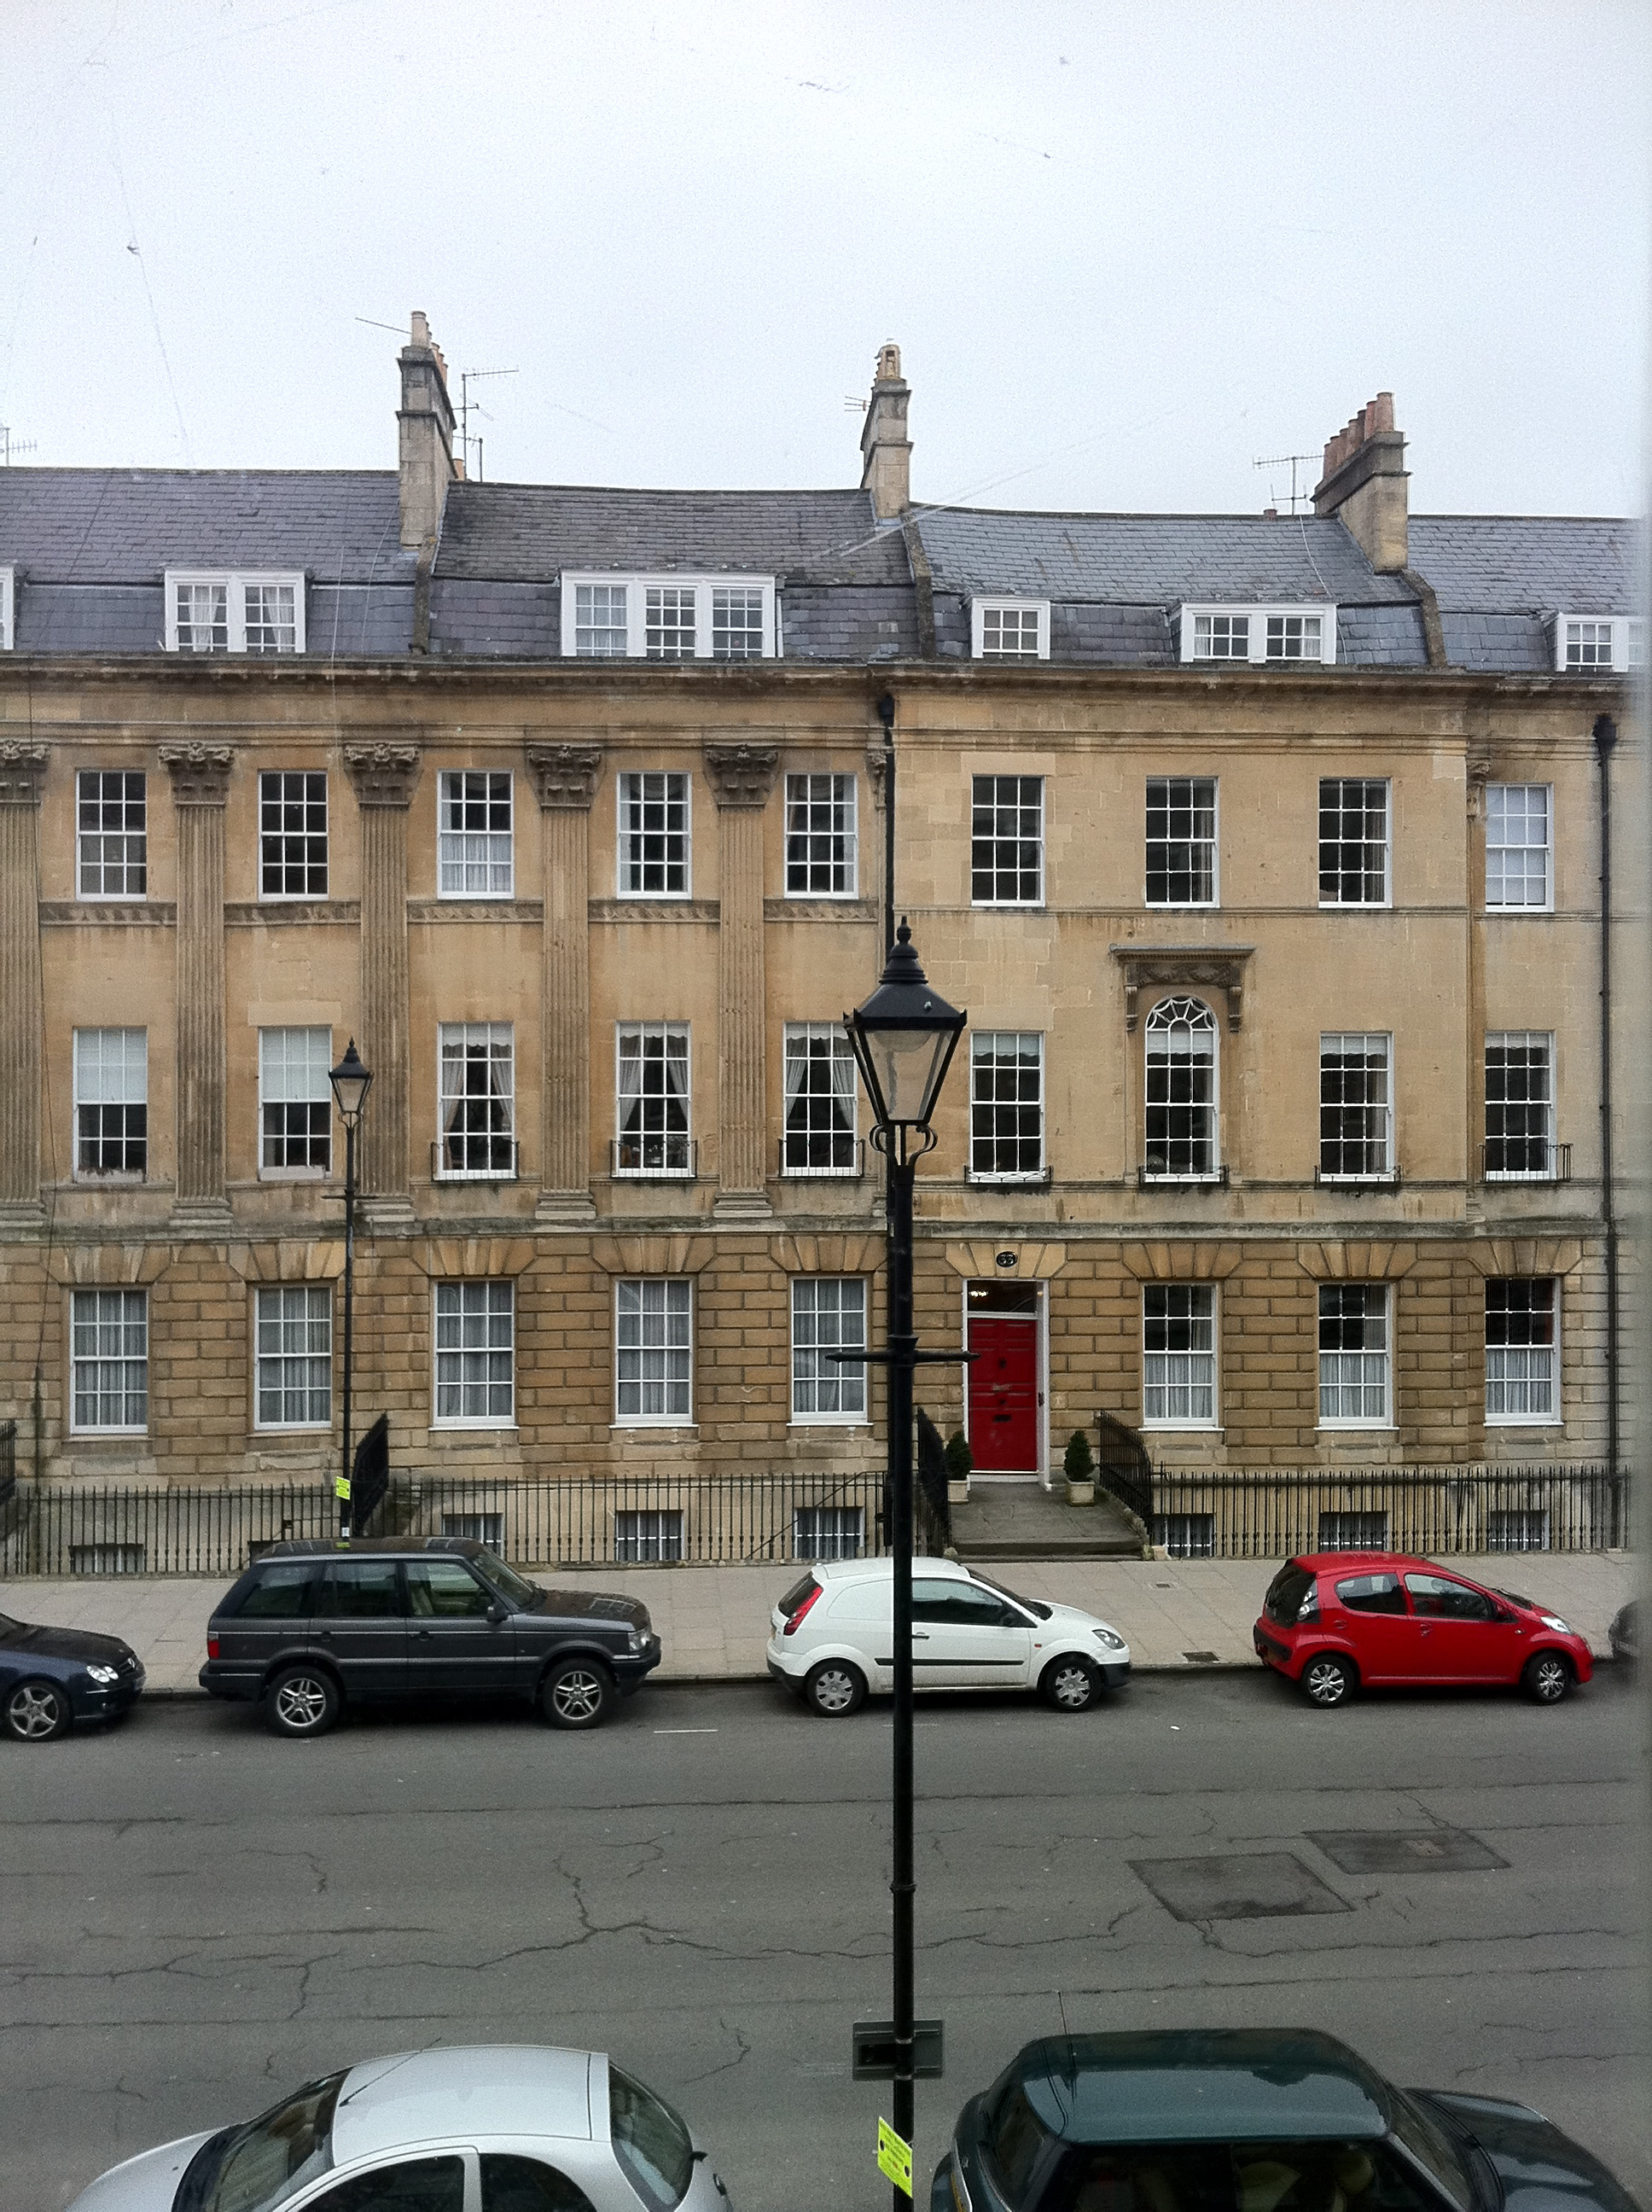 the view from my old flat - how lovely are these buildings?